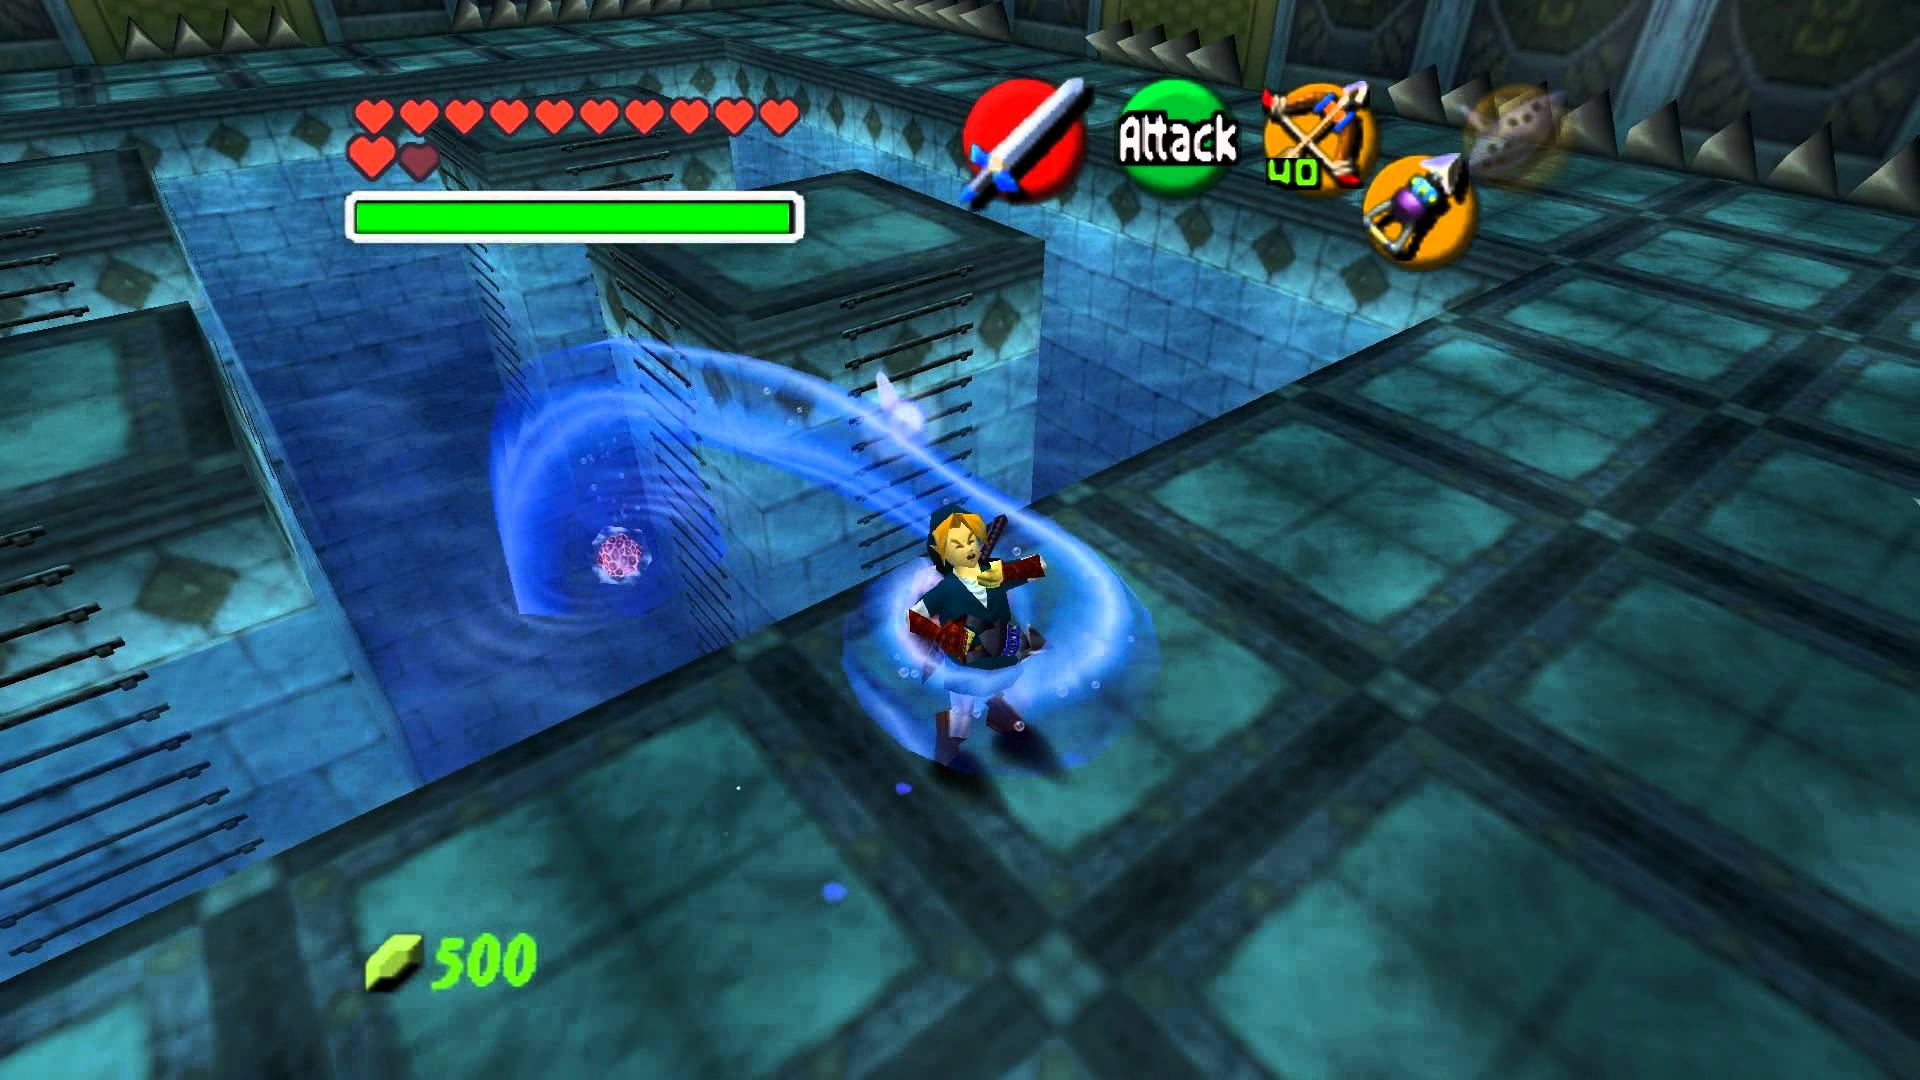 ZD Top - Top 5 Bosses/Mini-Bosses from Ocarina of Time